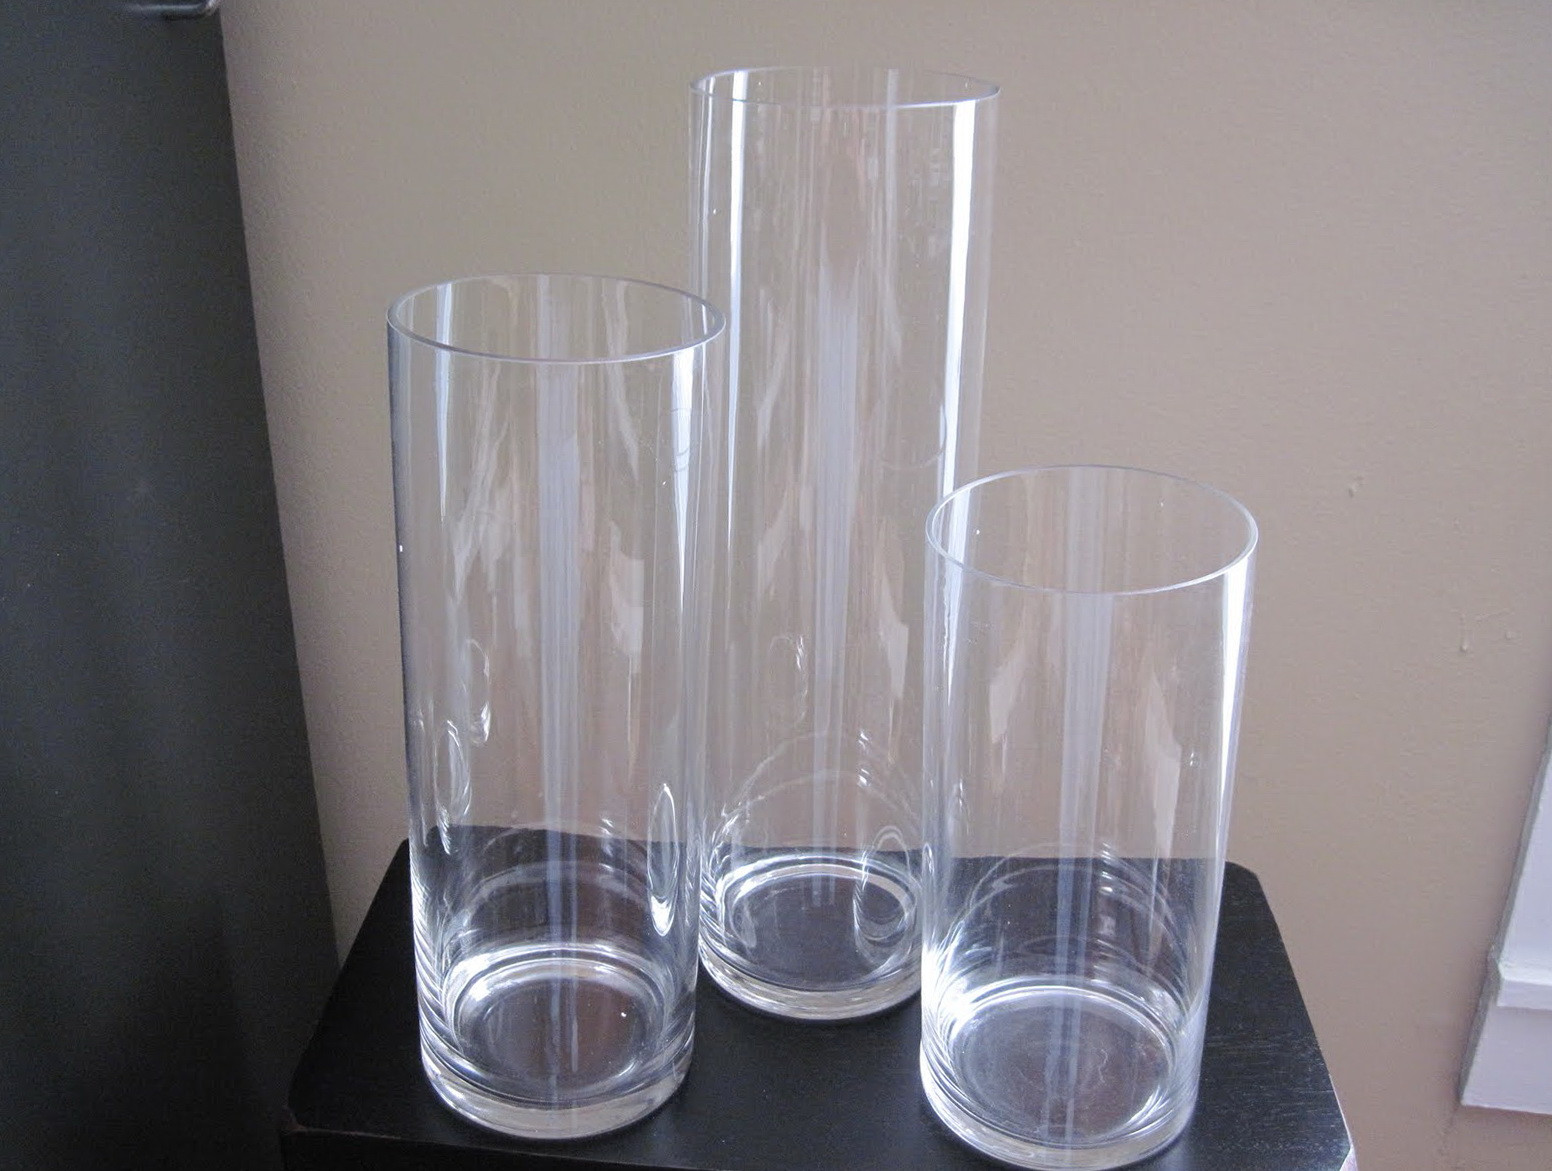 plastic square vases wholesale of vases design ideas assorted everyday vases wholesale flowers and regarding there are three tall glass vases bulk cylinder twenty four home design ideas simple classic transparent